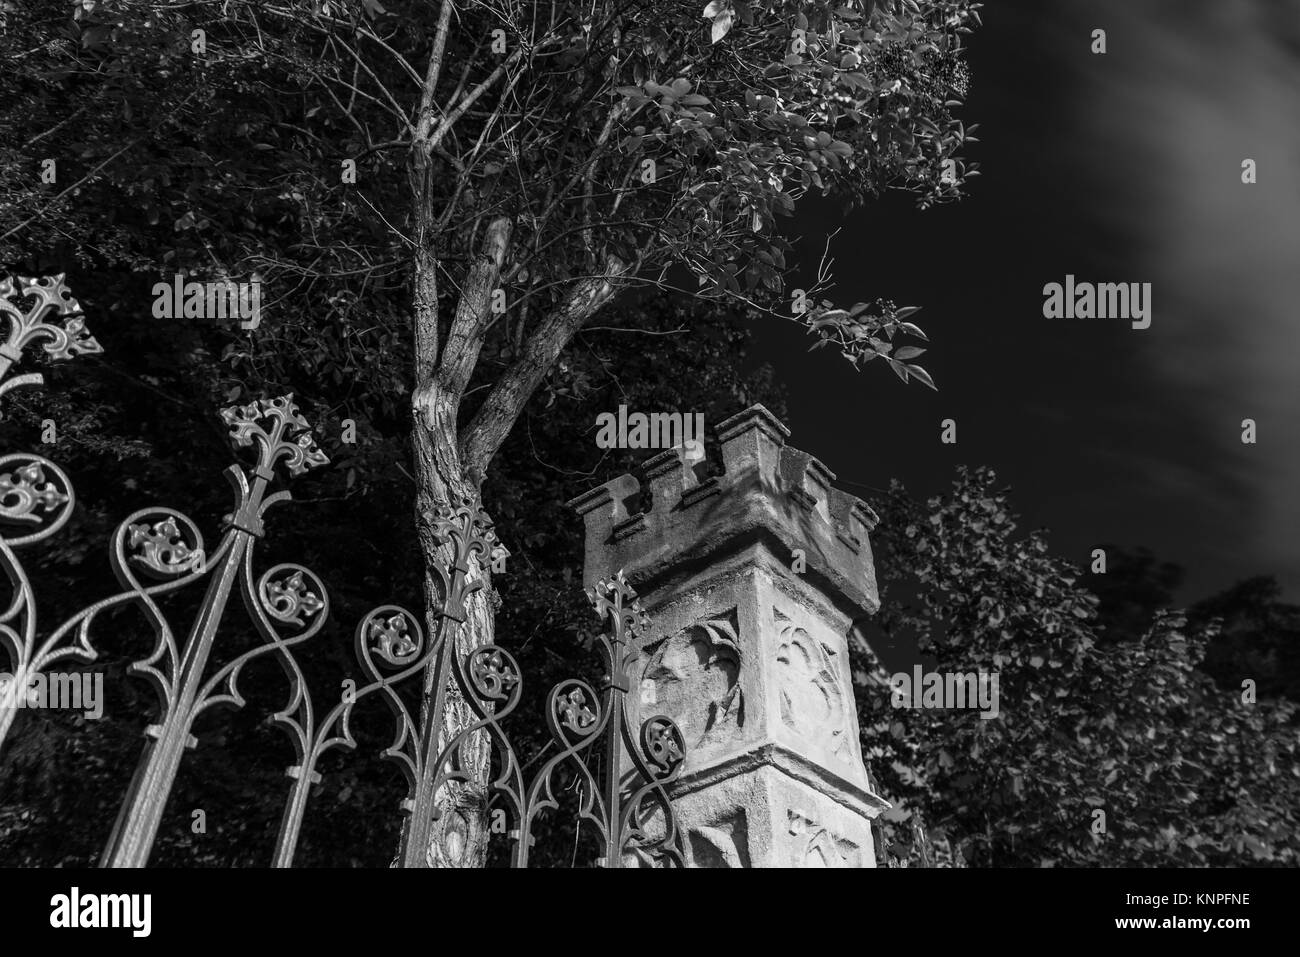 Night shot of an old metal fence and stone tower - Stock Image